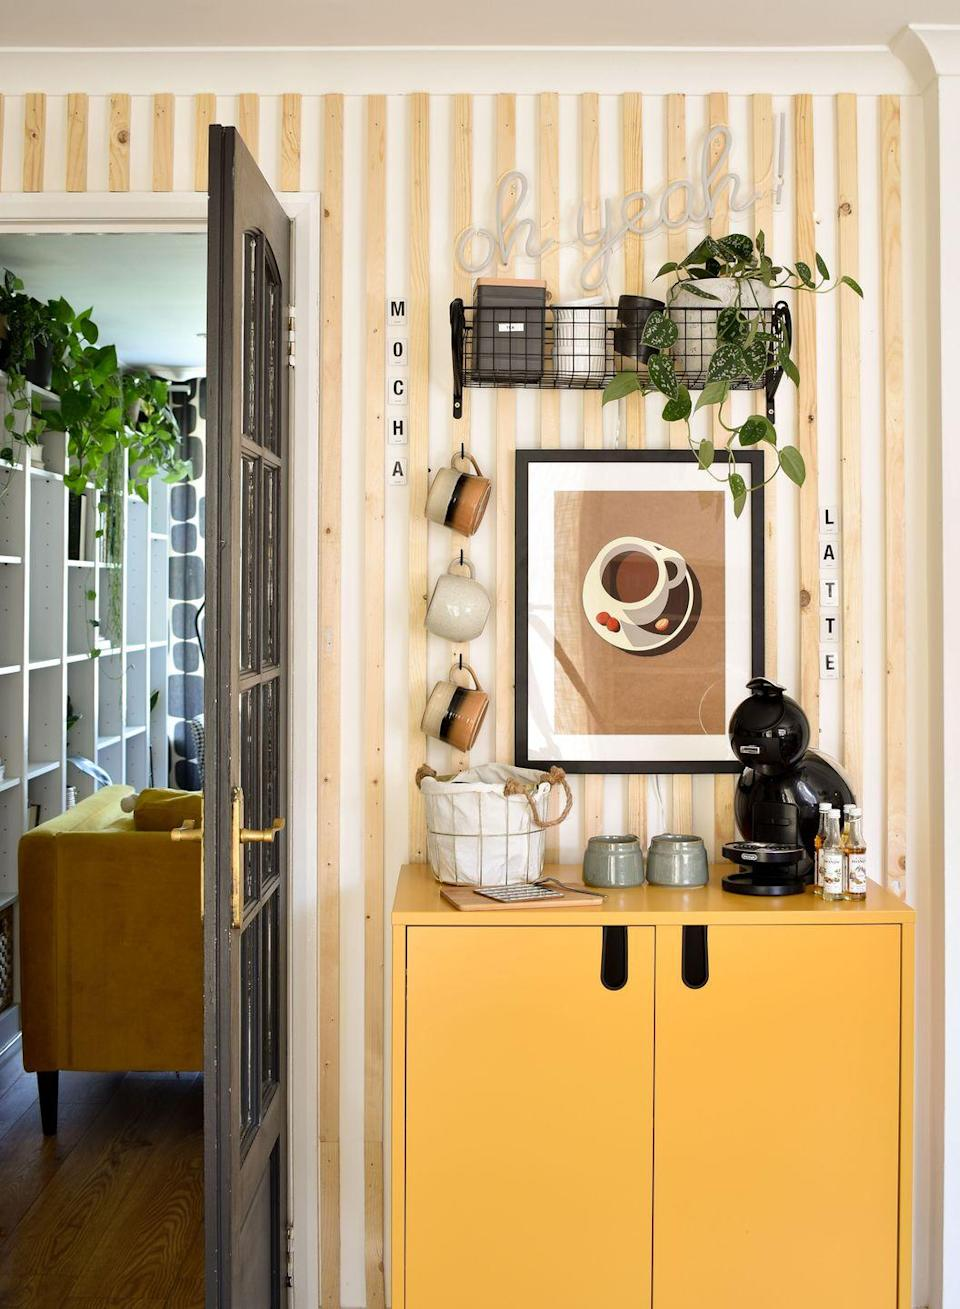 """<p>""""My husband and I are big coffee drinkers, so it made sense to have a dedicated space for to store our coffee. The feature wall behind is made from raw wood planks and really helps to frame the space. The prettier items are displayed on the hooks and shelf and the other accessories are in the cabinet. The <a href=""""https://go.redirectingat.com?id=127X1599956&url=https%3A%2F%2Fwww.wayfair.co.uk%2FTenzo--Uno-2-Door-Storage-Cabinet-8552-L102-K%7EXKD1305.html%3Fcjevent%3Dd31cb7b375c811eb804a004c0a180514%26refID%3DCJUK4653527%26PID%3D7947610&sref=https%3A%2F%2Fwww.harpersbazaar.com%2Fuk%2Fculture%2Flifestyle_homes%2Fg35595137%2Finside-the-home-of-interiors-blogger-medina-grillo%2F"""" rel=""""nofollow noopener"""" target=""""_blank"""" data-ylk=""""slk:cabinet is from Wayfair,"""" class=""""link rapid-noclick-resp"""">cabinet is from Wayfair, </a>and the shelf is from <a href=""""https://go.redirectingat.com?id=127X1599956&url=https%3A%2F%2Fwww.notonthehighstreet.com%2F&sref=https%3A%2F%2Fwww.harpersbazaar.com%2Fuk%2Fculture%2Flifestyle_homes%2Fg35595137%2Finside-the-home-of-interiors-blogger-medina-grillo%2F"""" rel=""""nofollow noopener"""" target=""""_blank"""" data-ylk=""""slk:Not On The High Street"""" class=""""link rapid-noclick-resp"""">Not On The High Street</a>.</p>"""